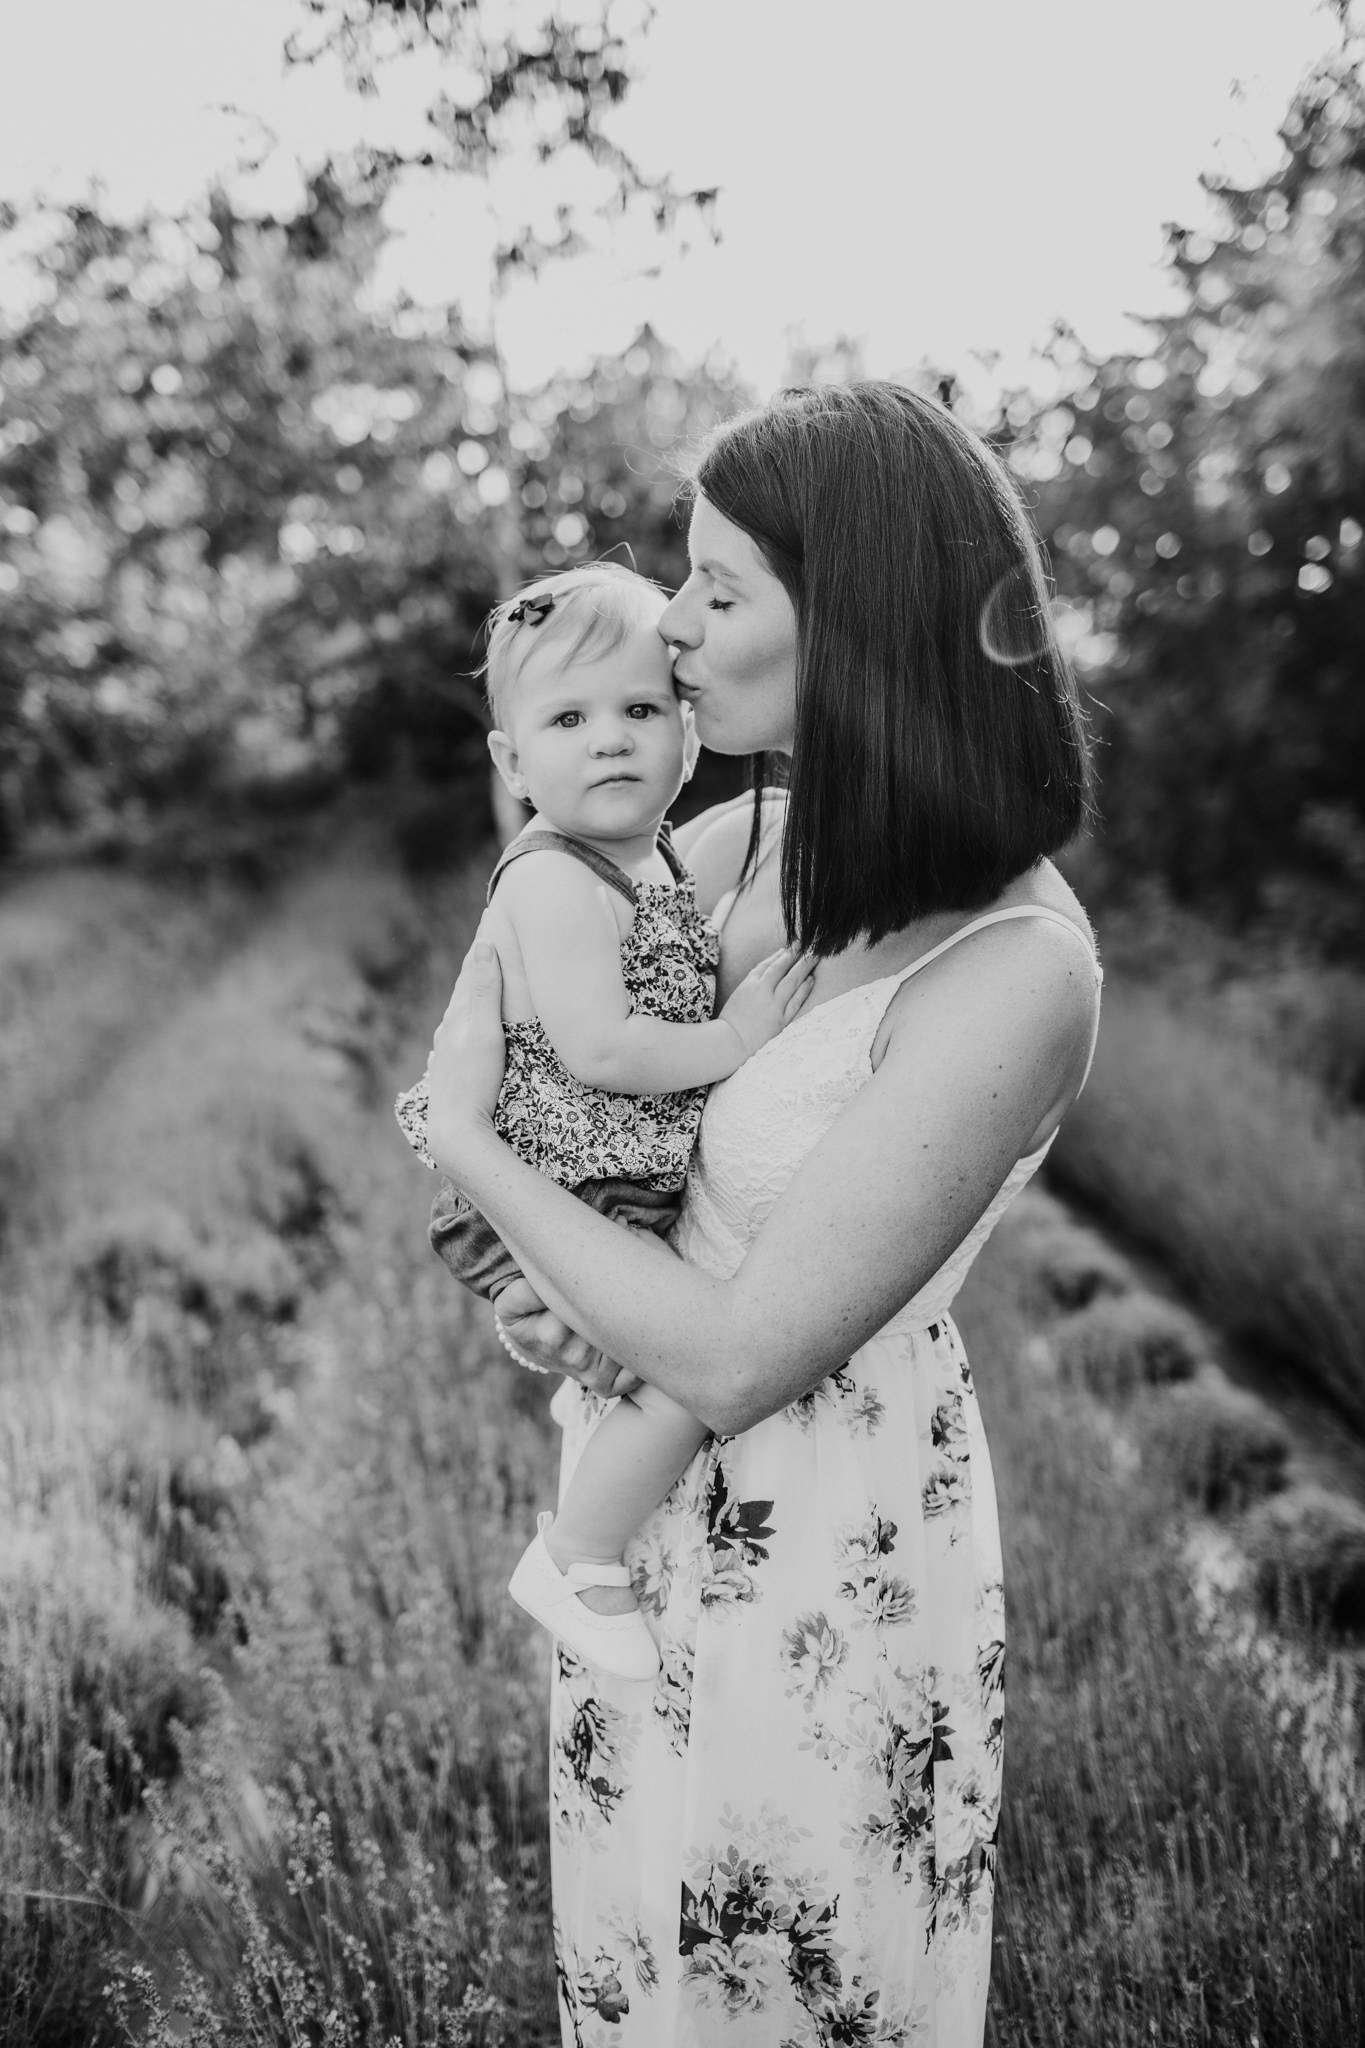 mother and daughter snuggling in the sunset in a lavender field black and white image